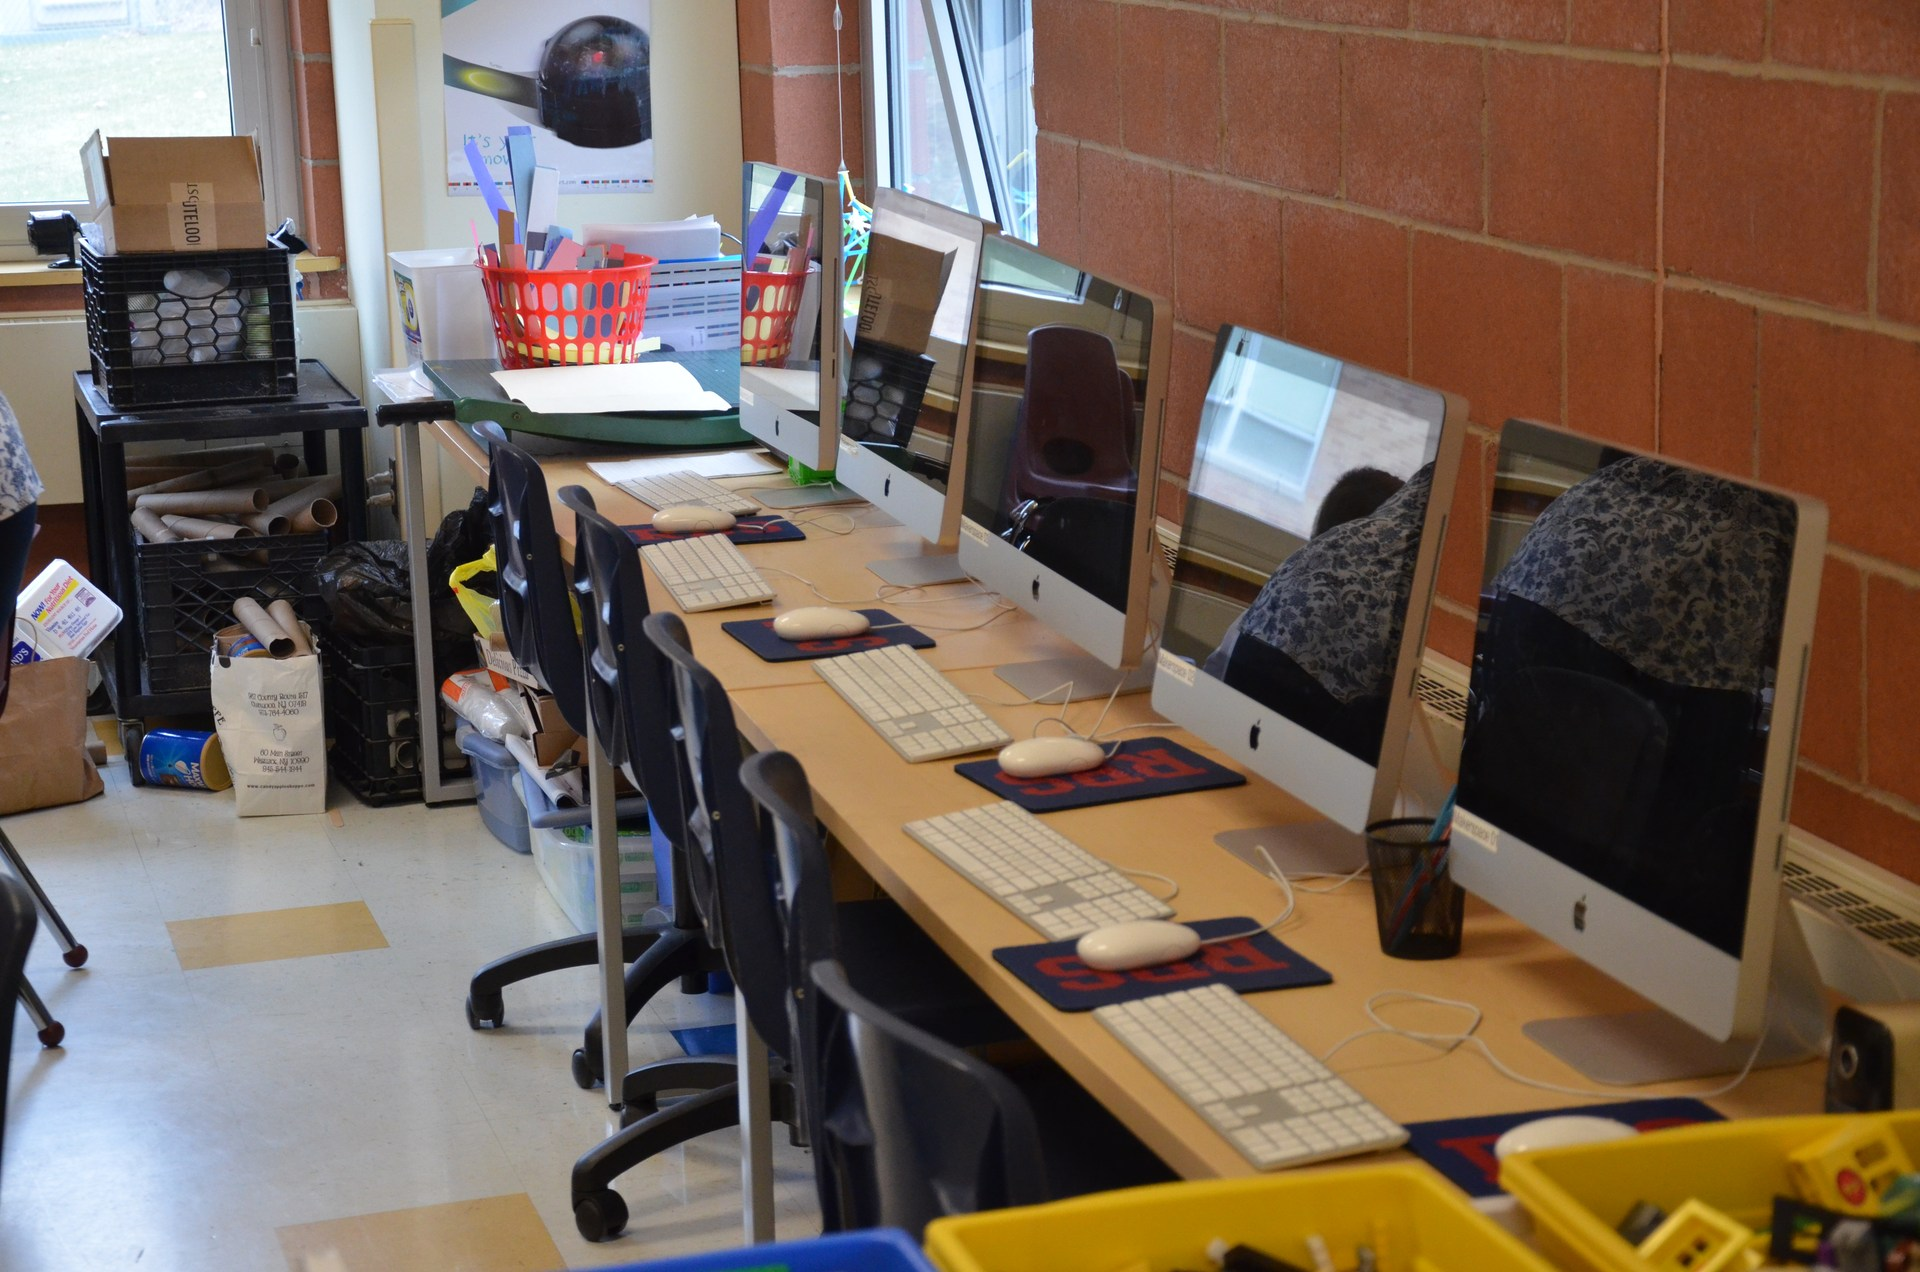 Makerspace computers